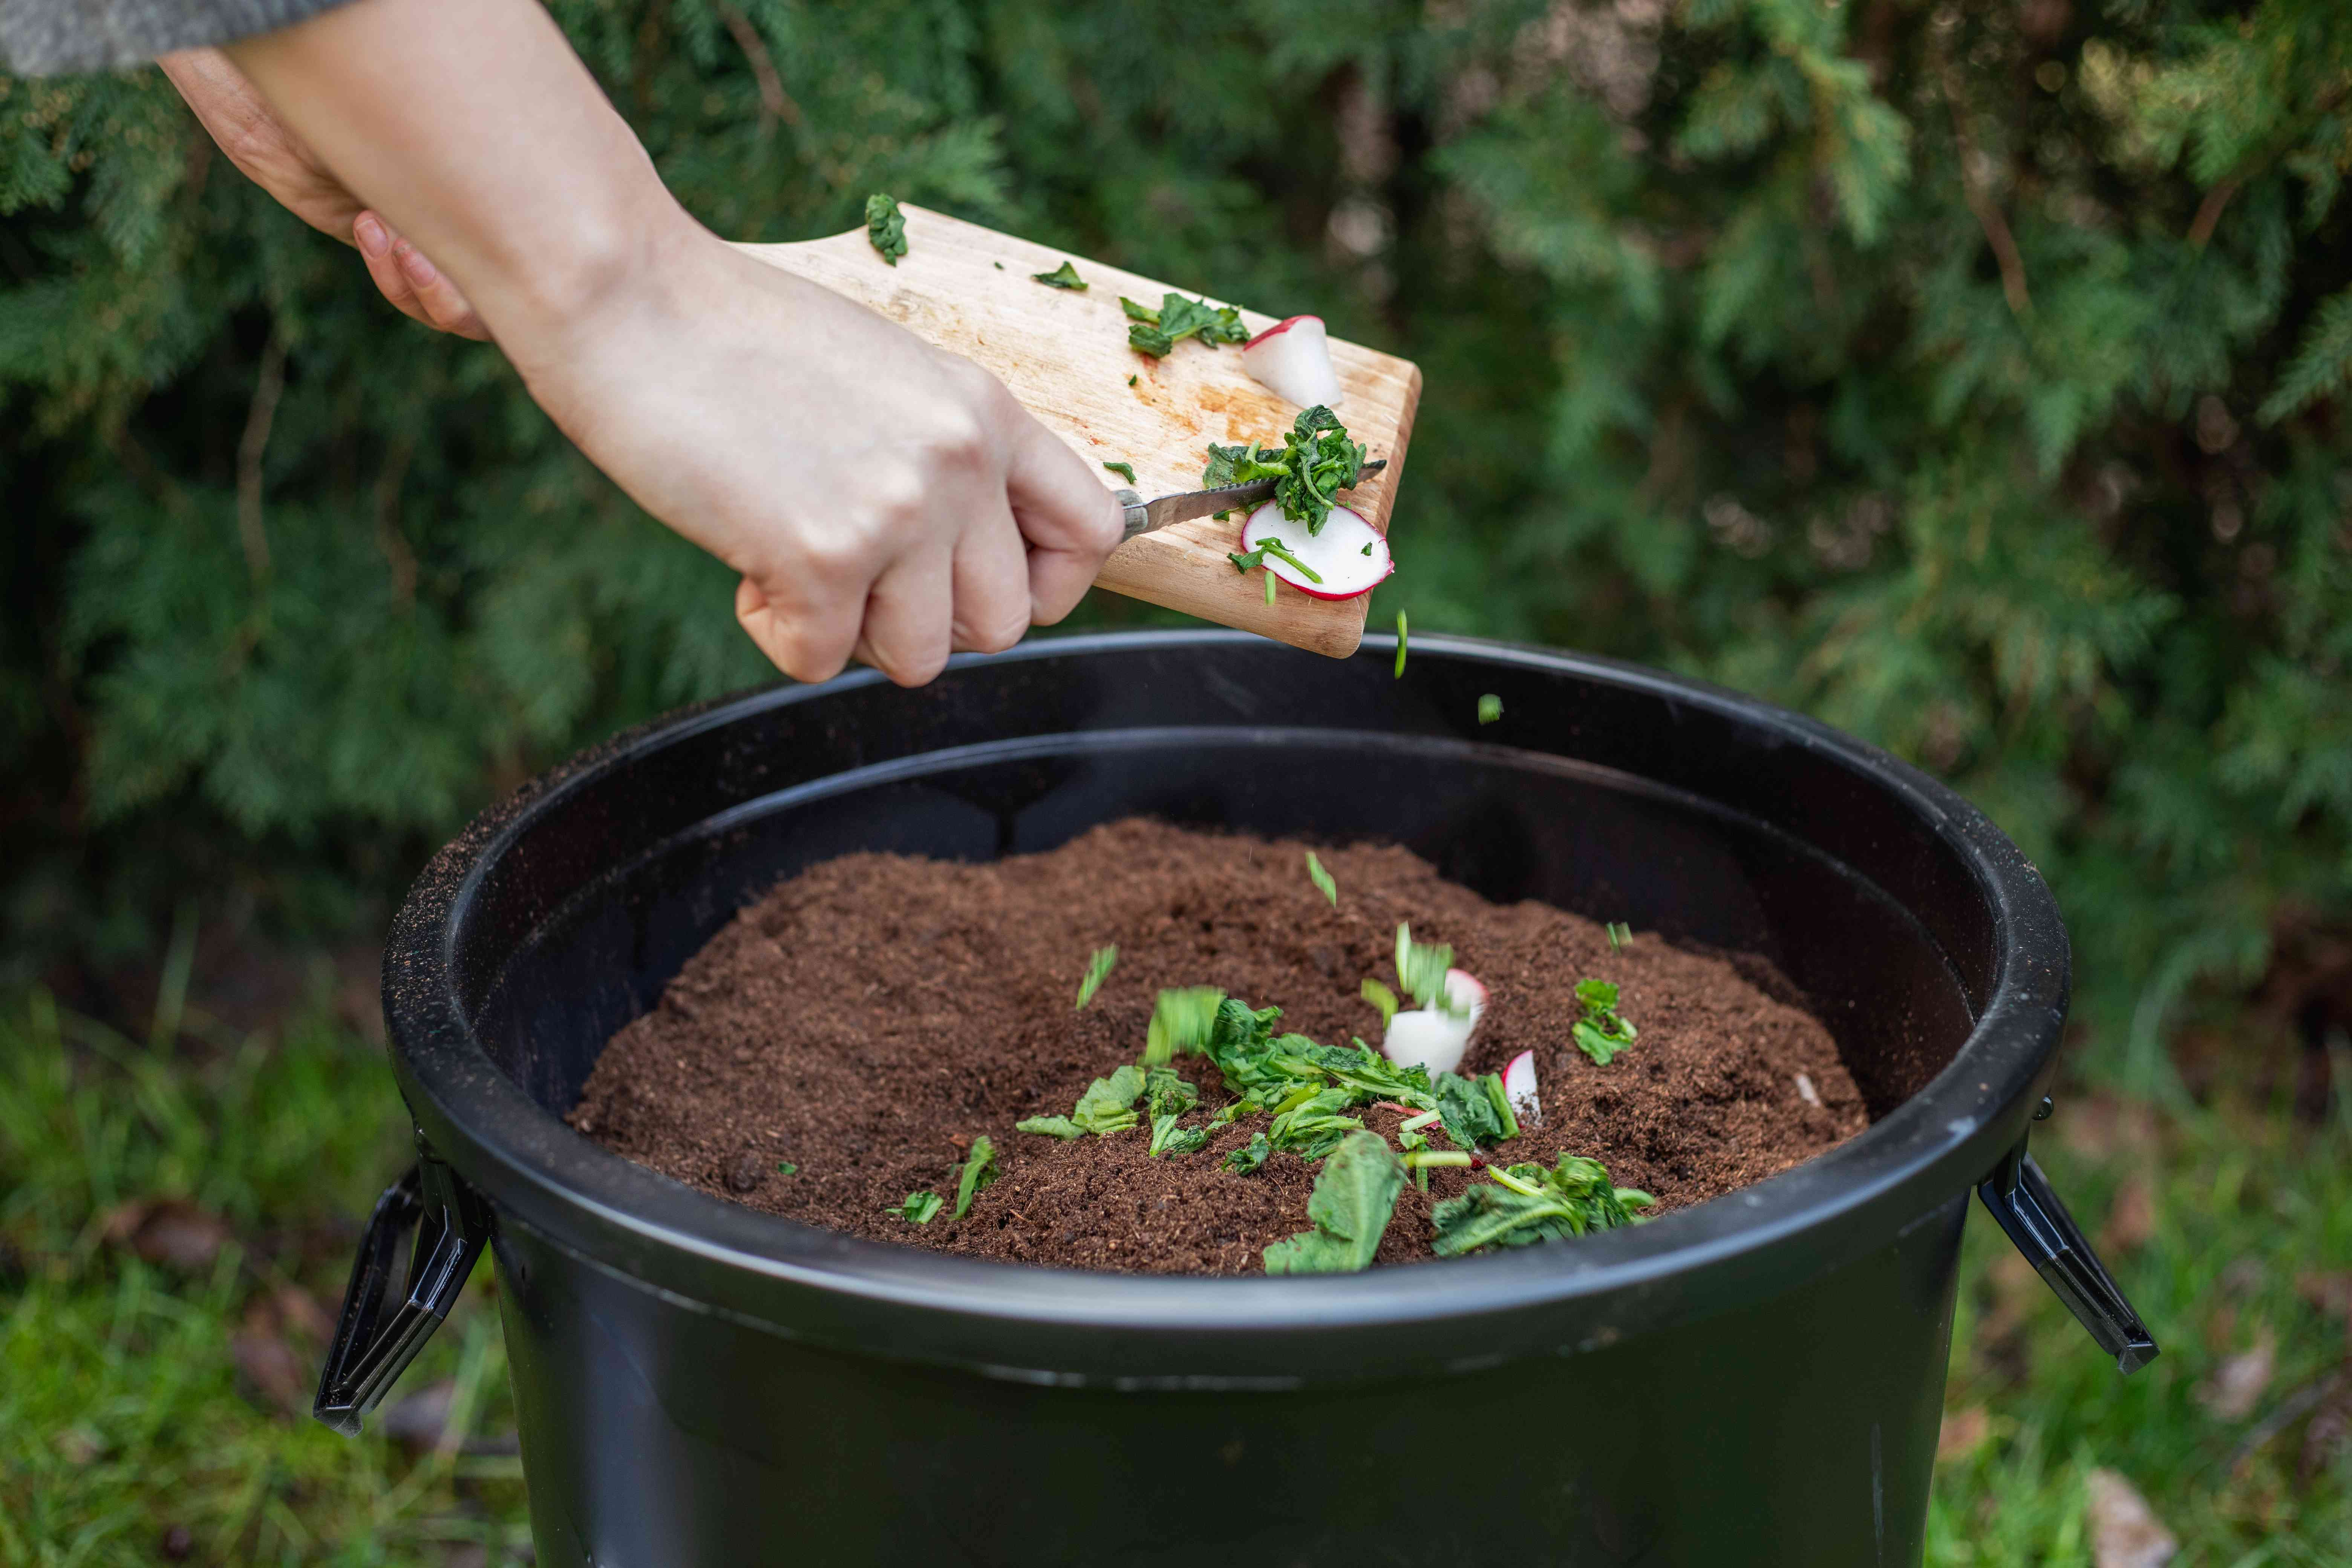 hands brush vegetable scraps and clippings into compost bucket filled with soil